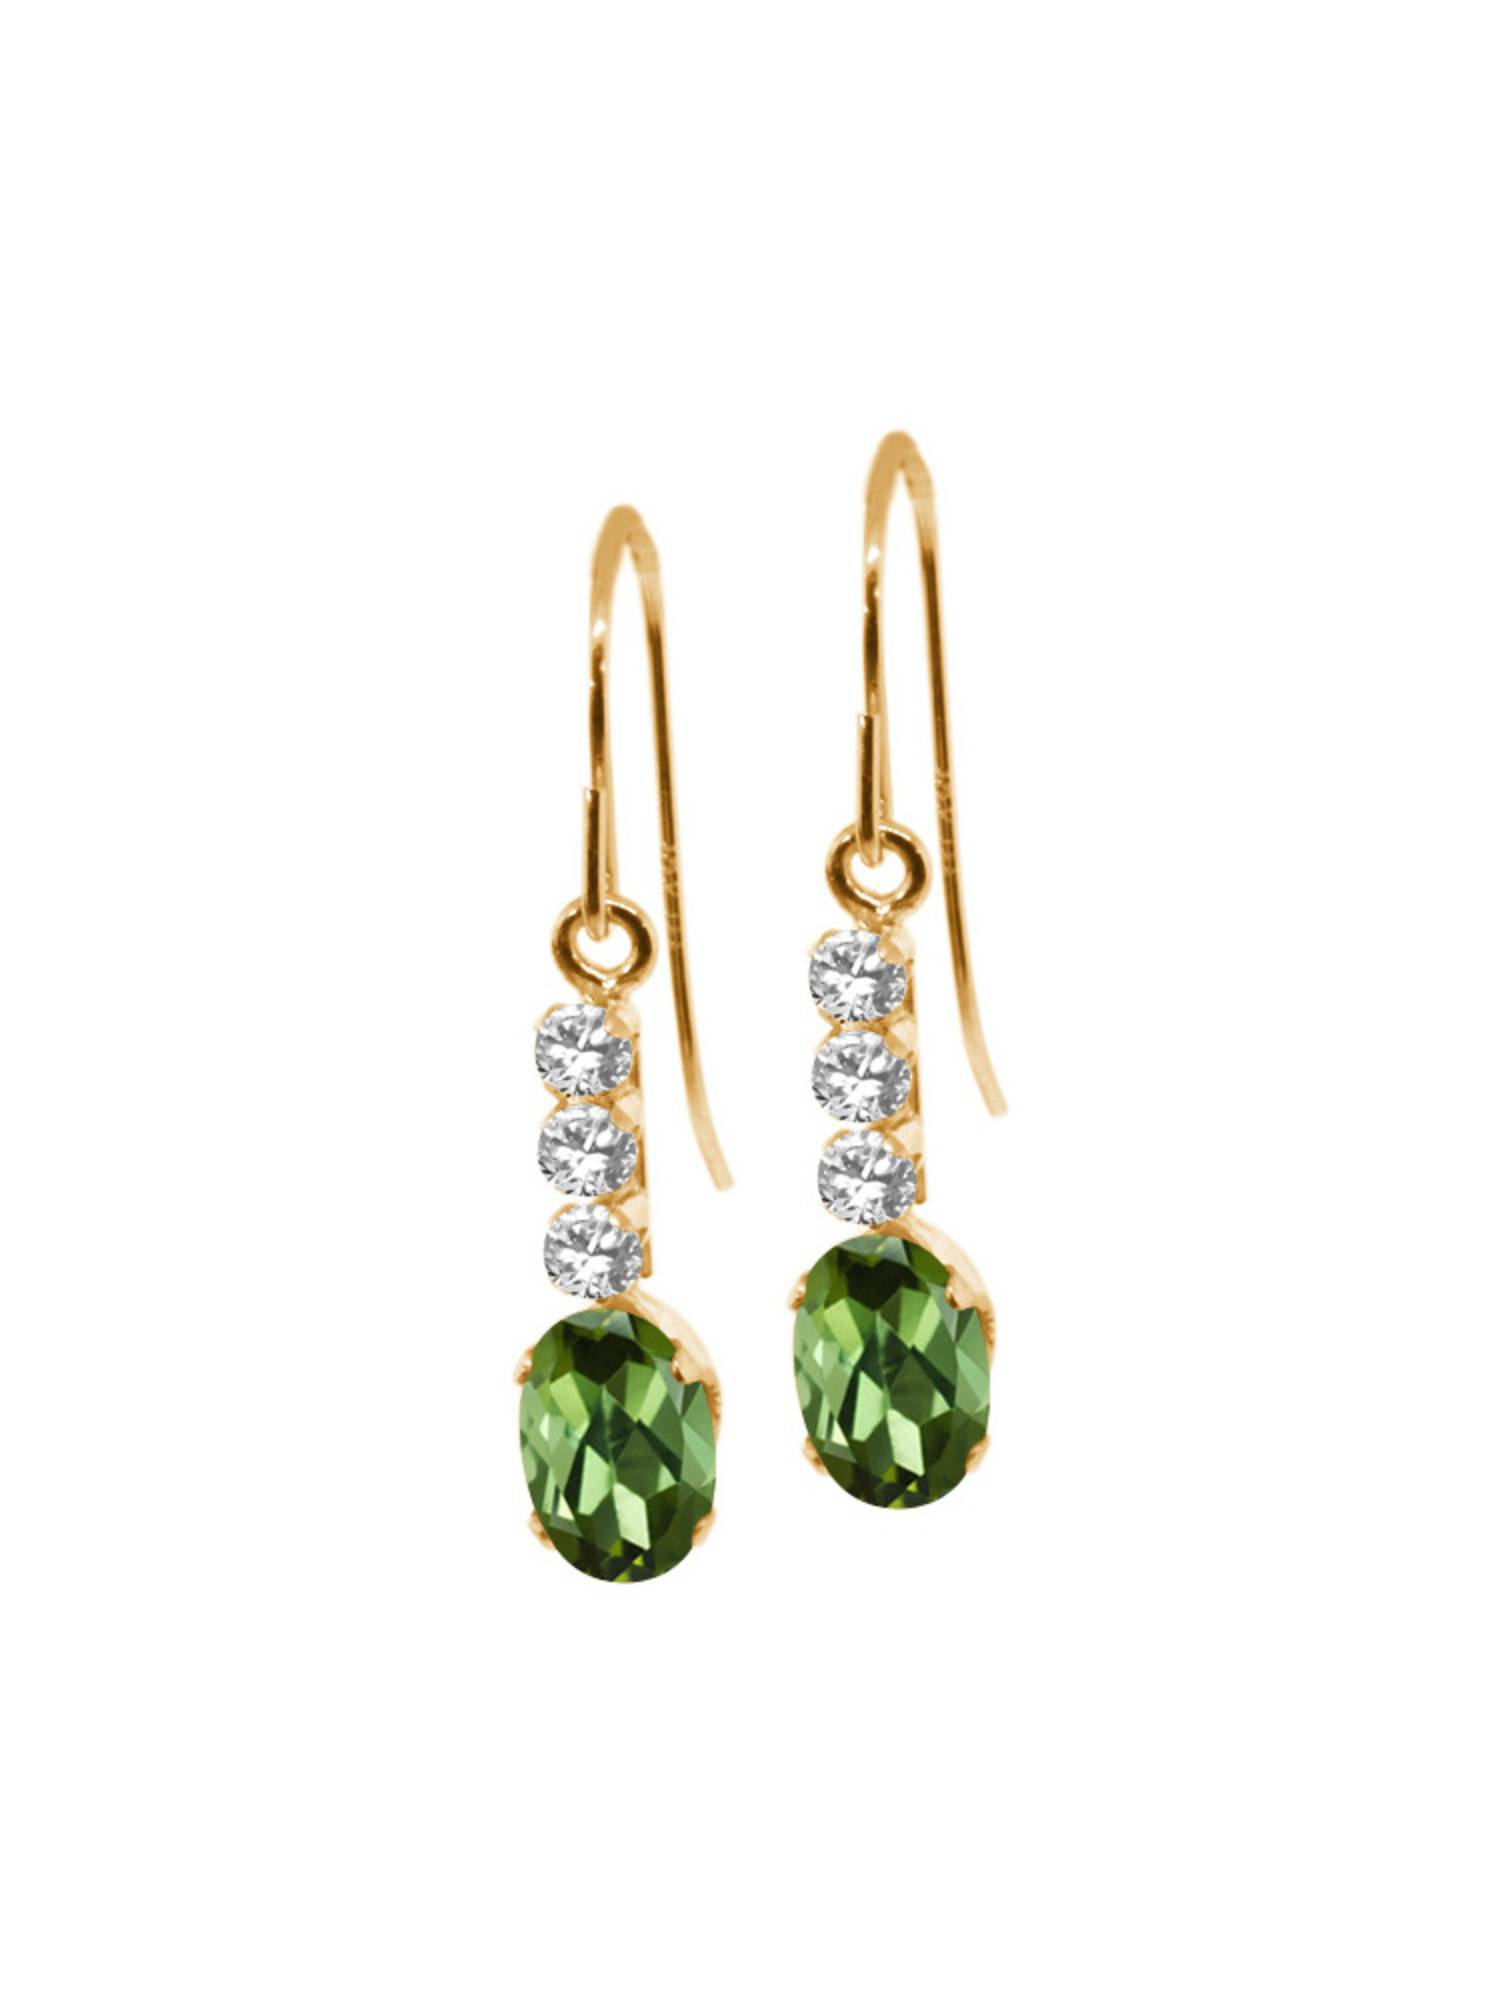 0.98 Ct Oval Green Tourmaline 10K Yellow Gold Earrings by